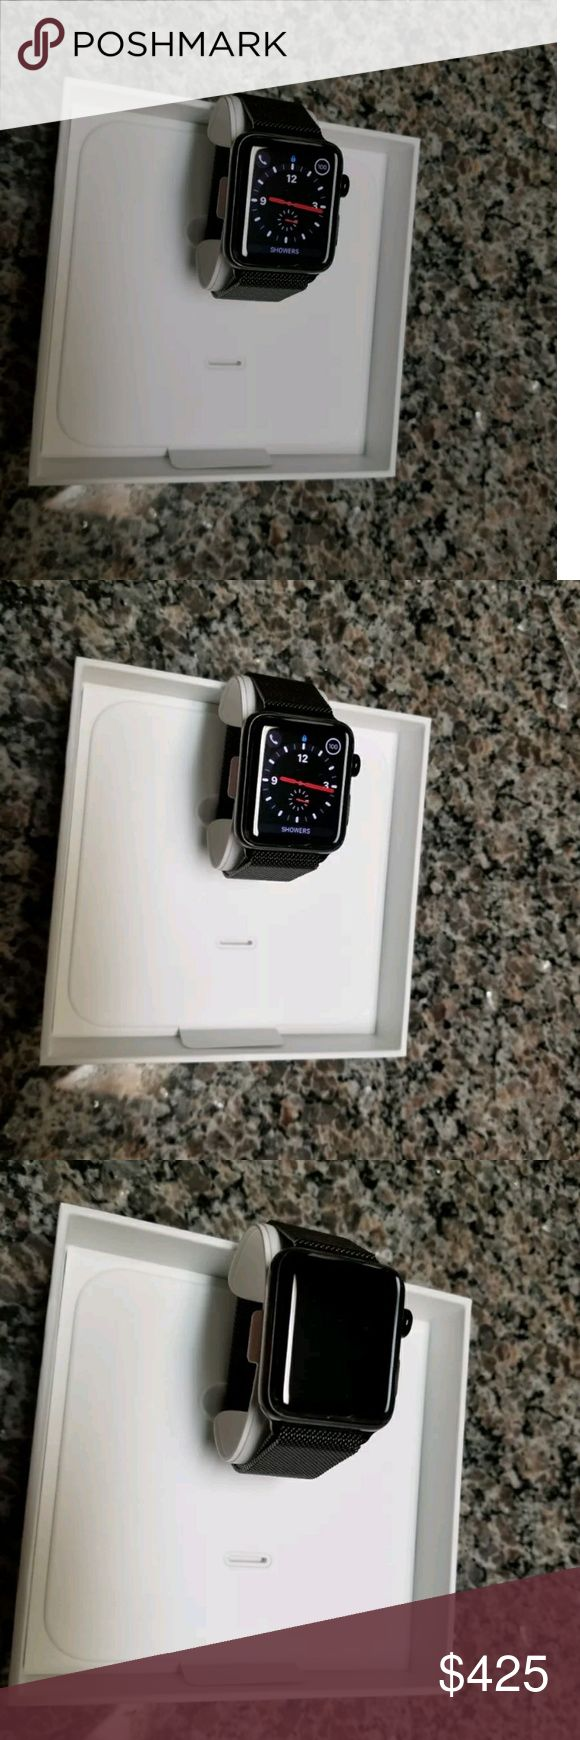 Apple Watch Series 3 Stainless Steel Apple Watch Series 3 (GPS) requires an iPhone 5s or later with iOS 11 or later. Apple Watch Series 3 (GPS + Cellular) requires an iPhone 6 or later with iOS 11 or later. Apple Watch and iPhone service provider must be the same. Cellular is not available with all service providers. Not all service providers support enterprise accounts. Check with your employer and service provider. Some legacy plans may not be compatible. Prepaid plans are not supported…